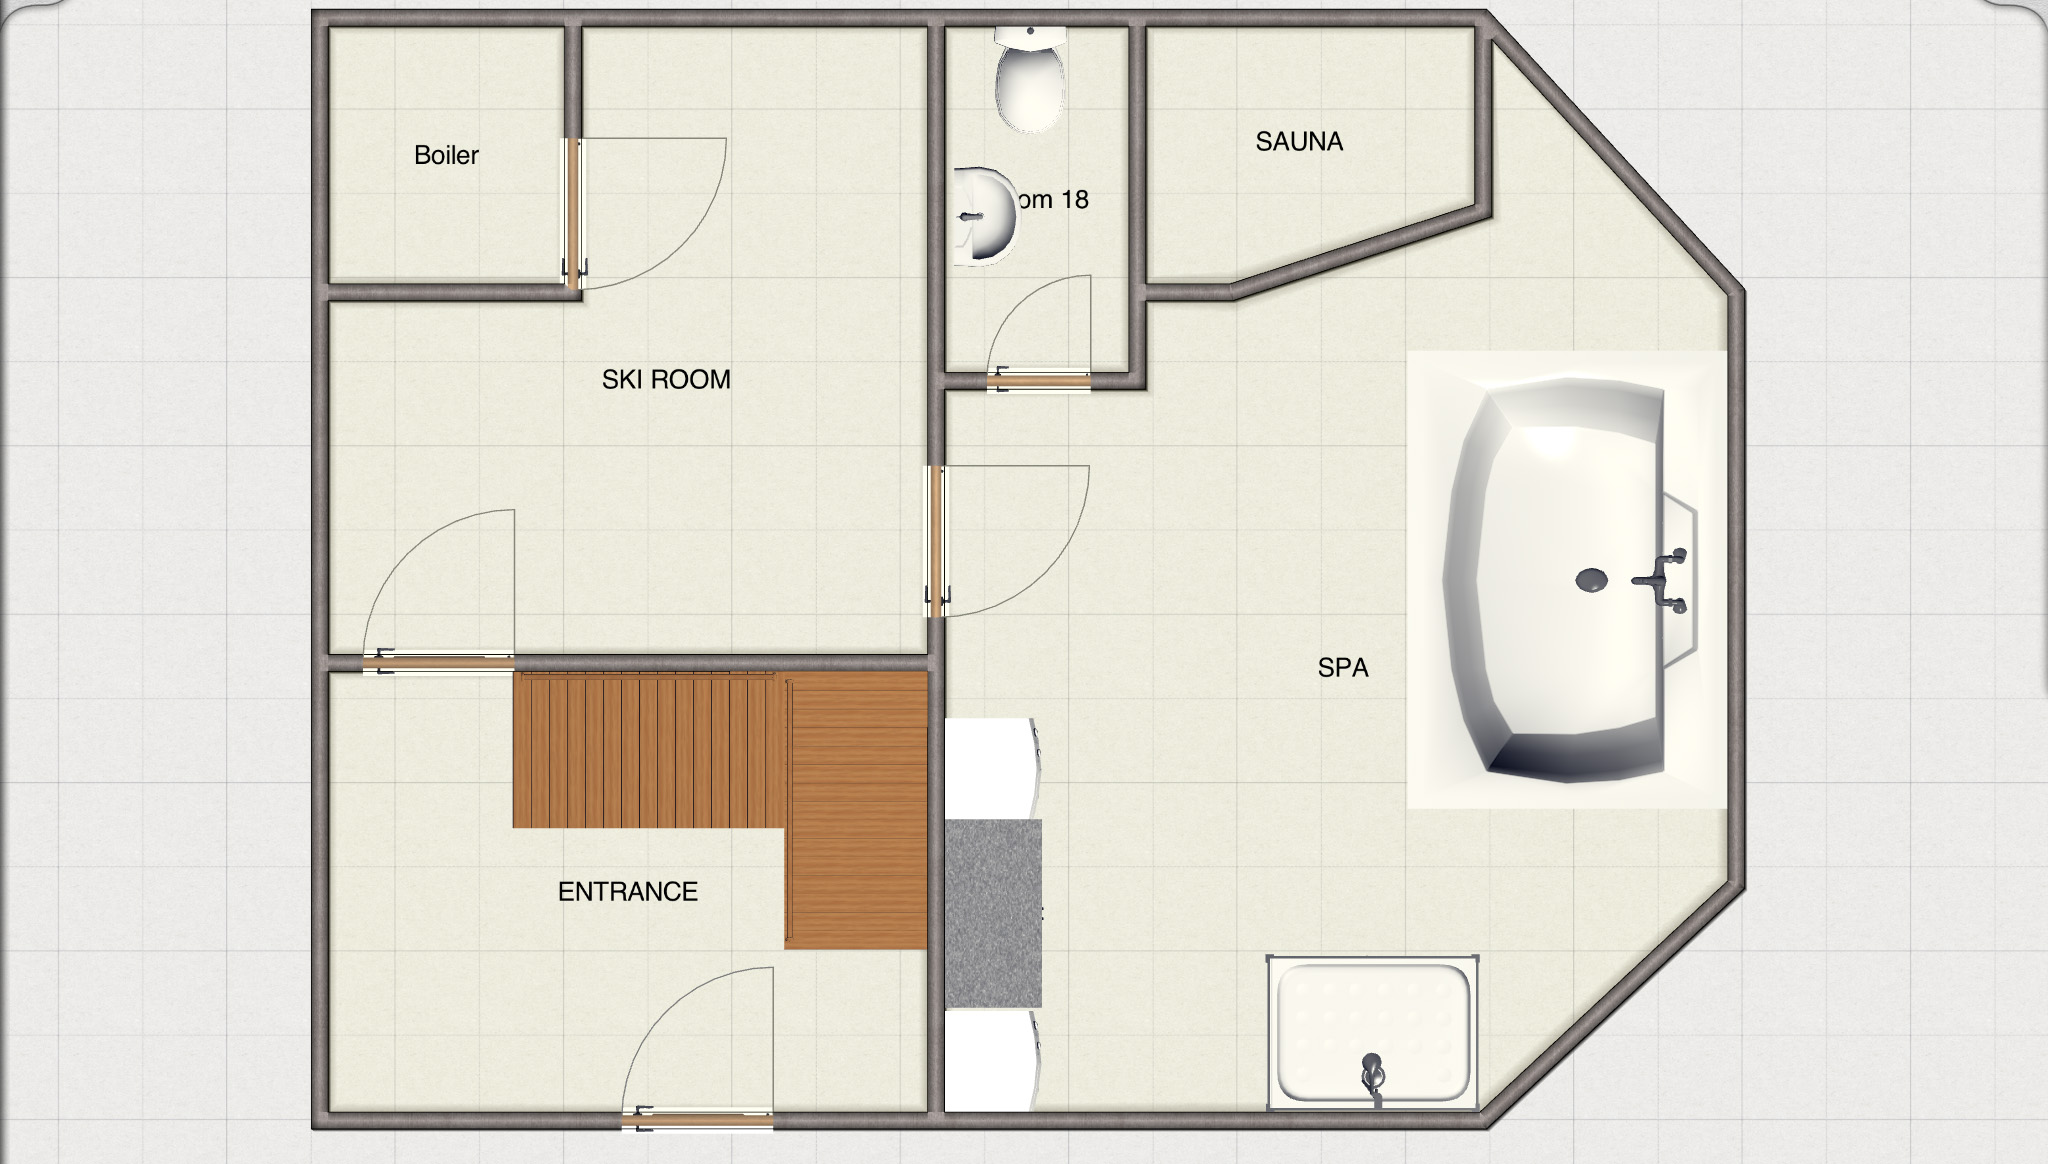 The ground floor with entrance hall  - round to ski and boot room to Spa with Jacuzzi , sauna, shower and toilet. Stairs going up to the upper ground floor.